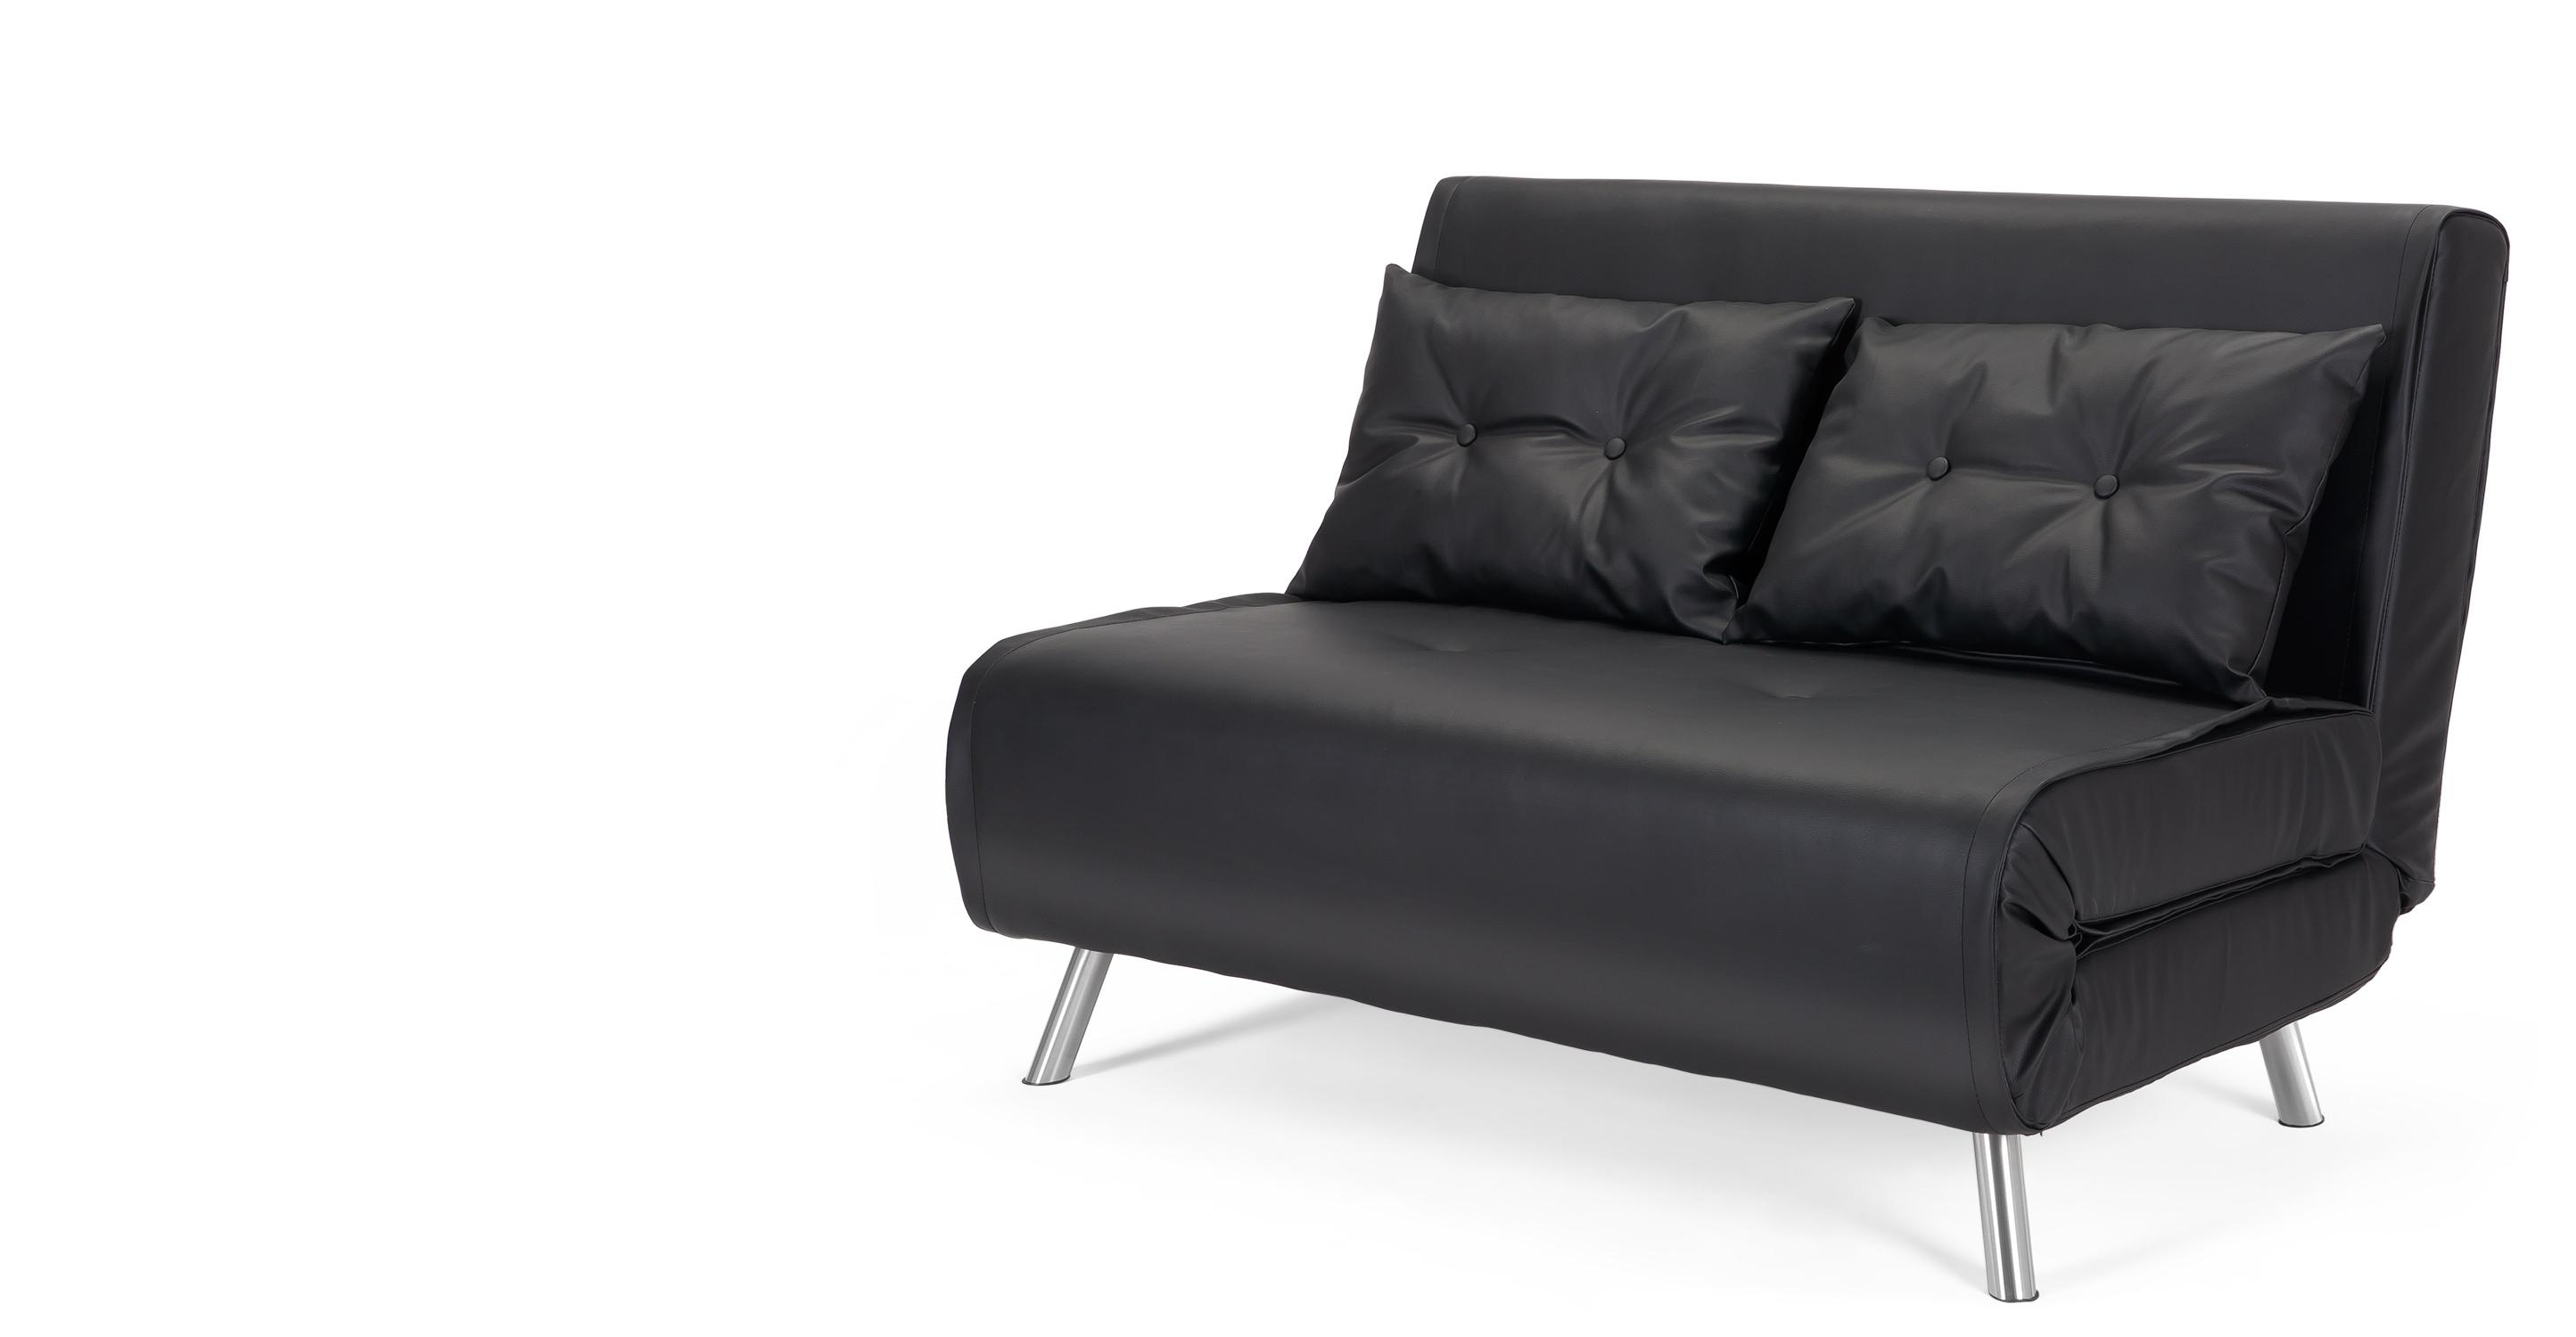 Sofas Center : Staggering Small Sofa Chair Photos Ideas Furniture Pertaining To Very Small Sofas (Image 14 of 20)